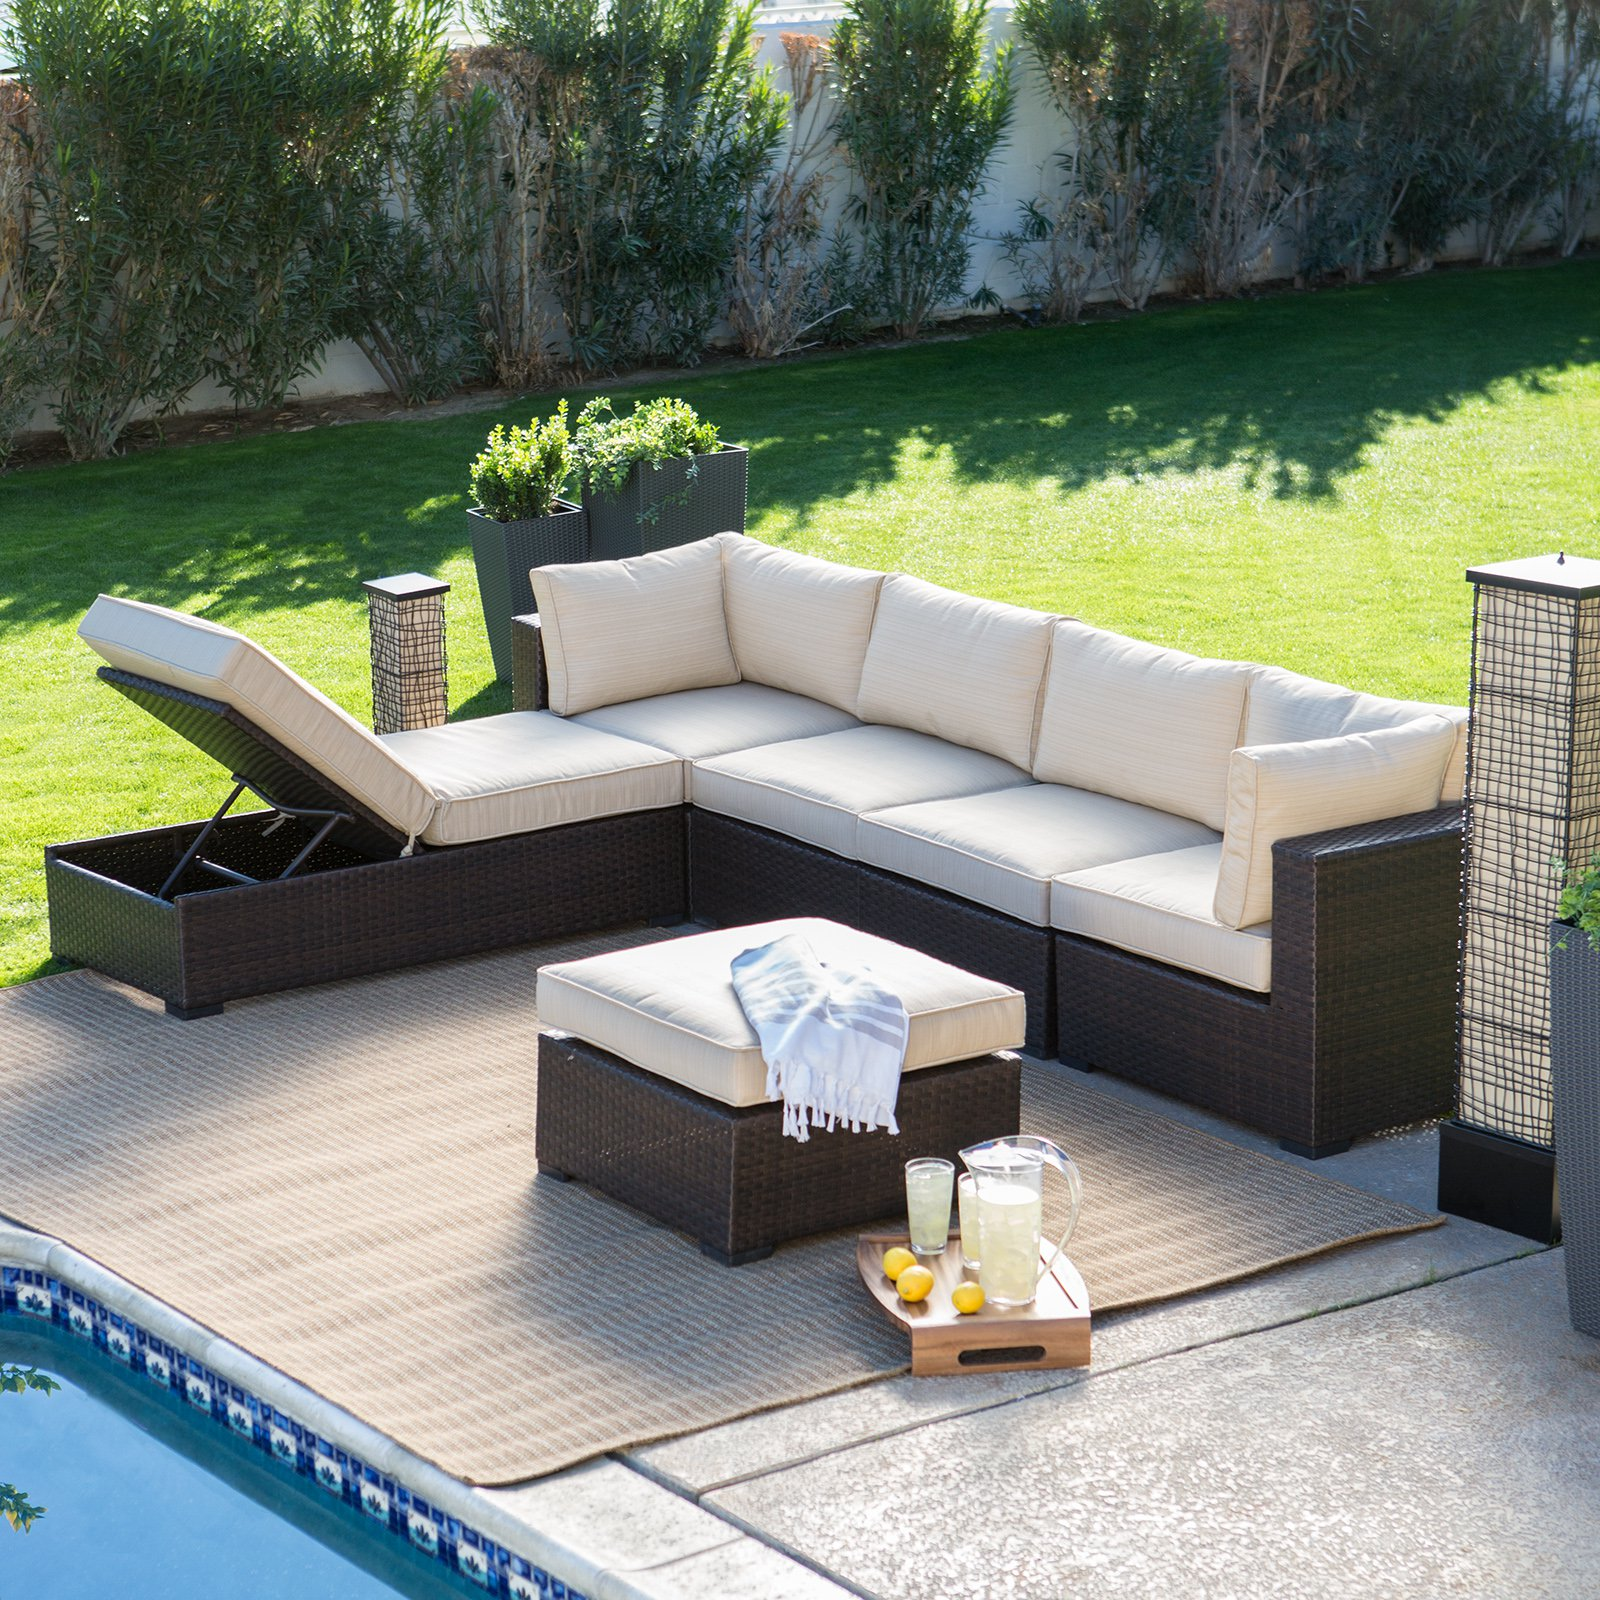 Create a warm place in the outside of the house with outdoor sectional